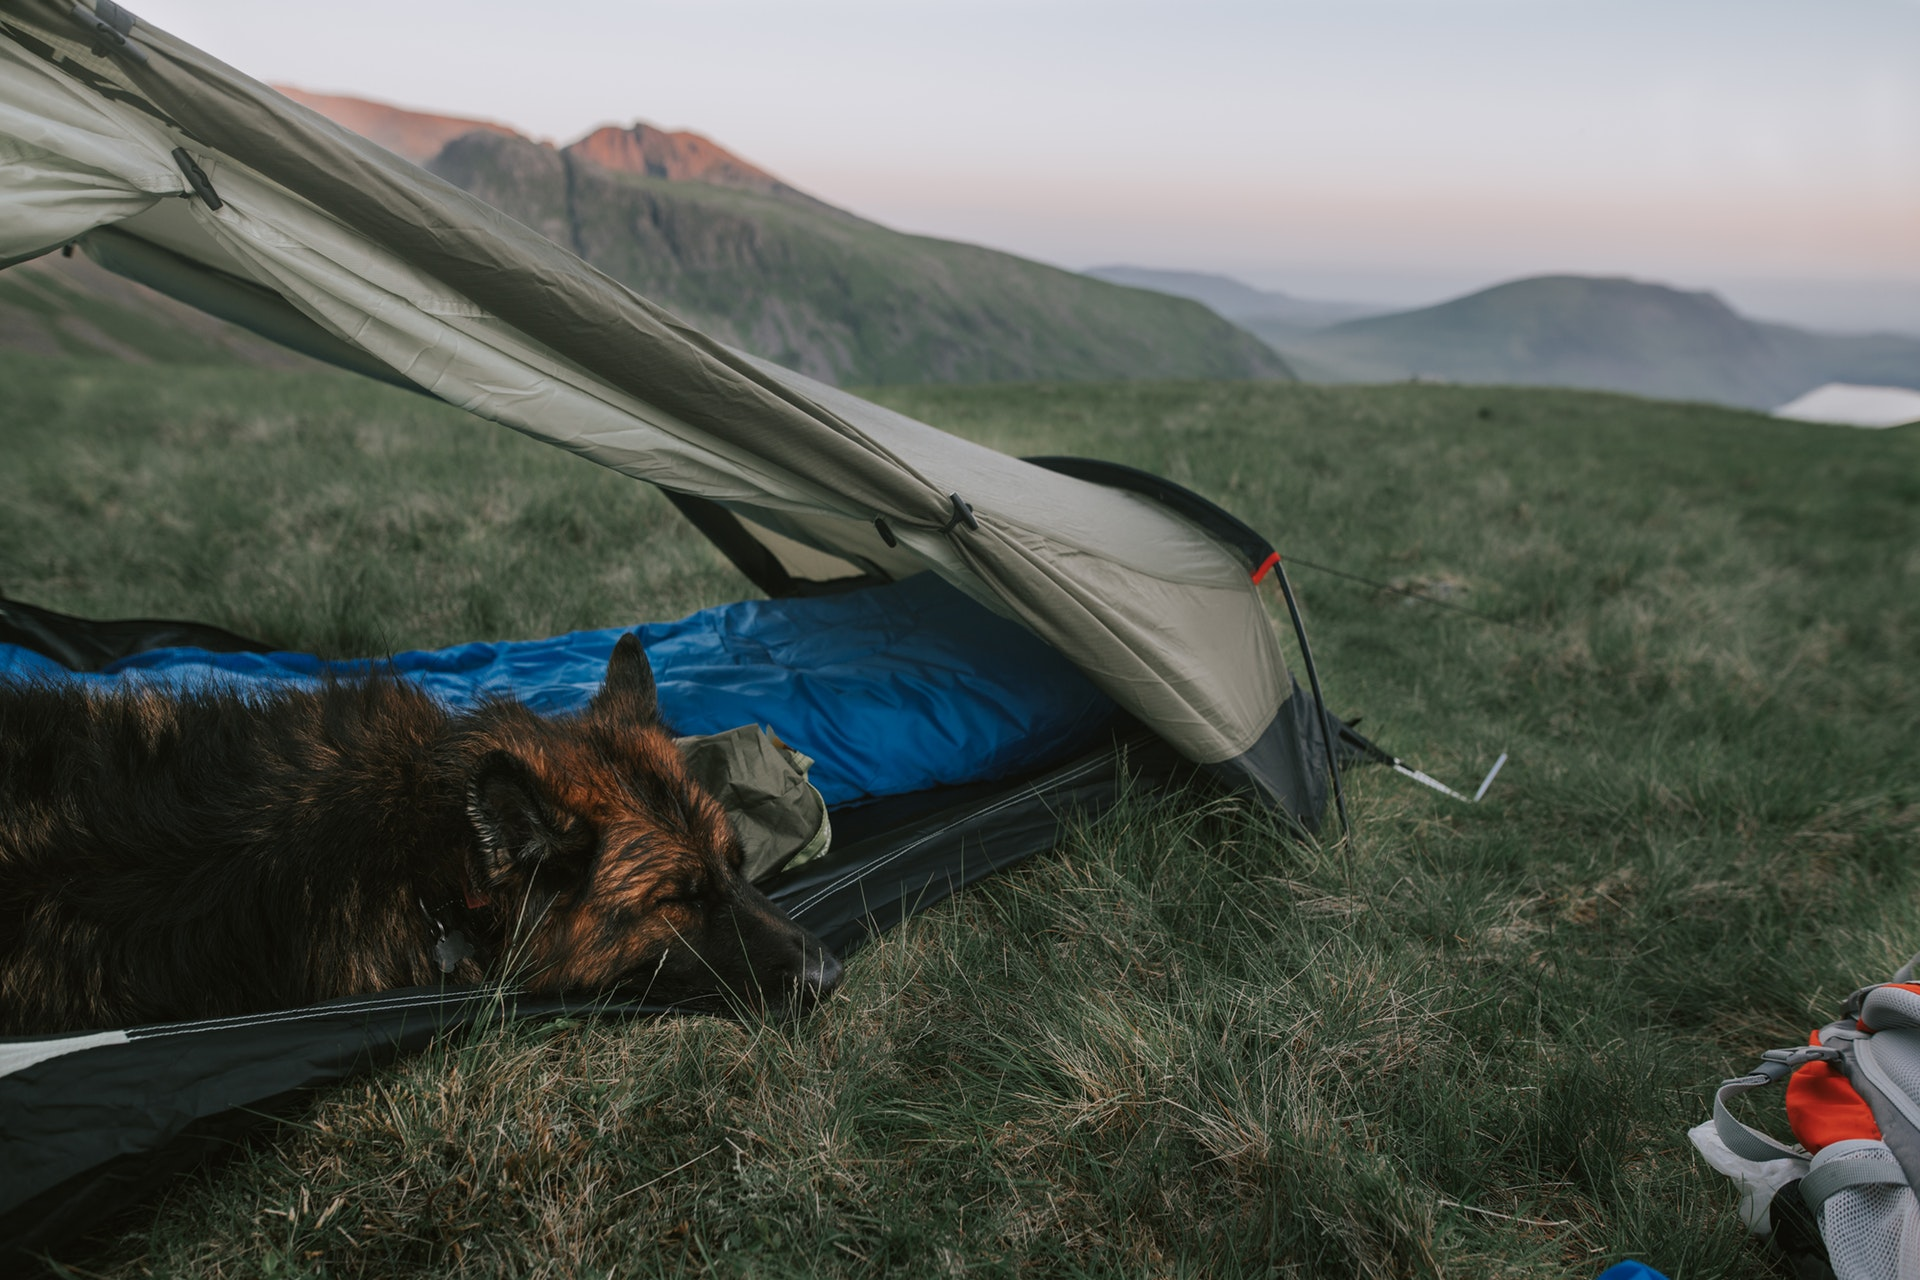 Dog and tent